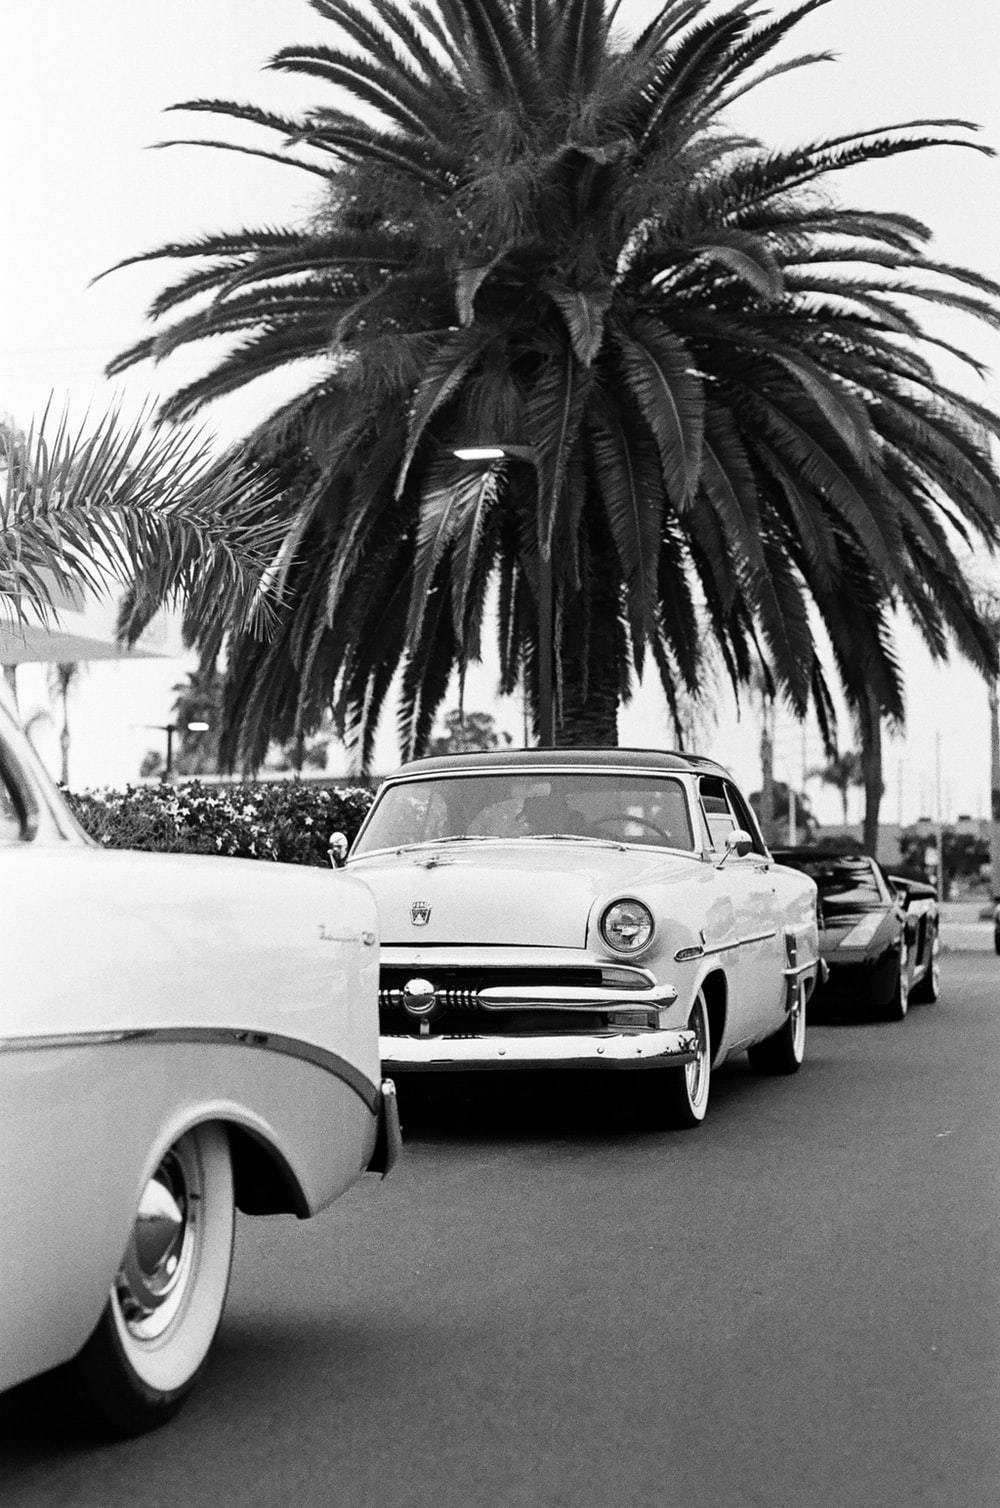 grayscale photo of classic car parked on the side of the road